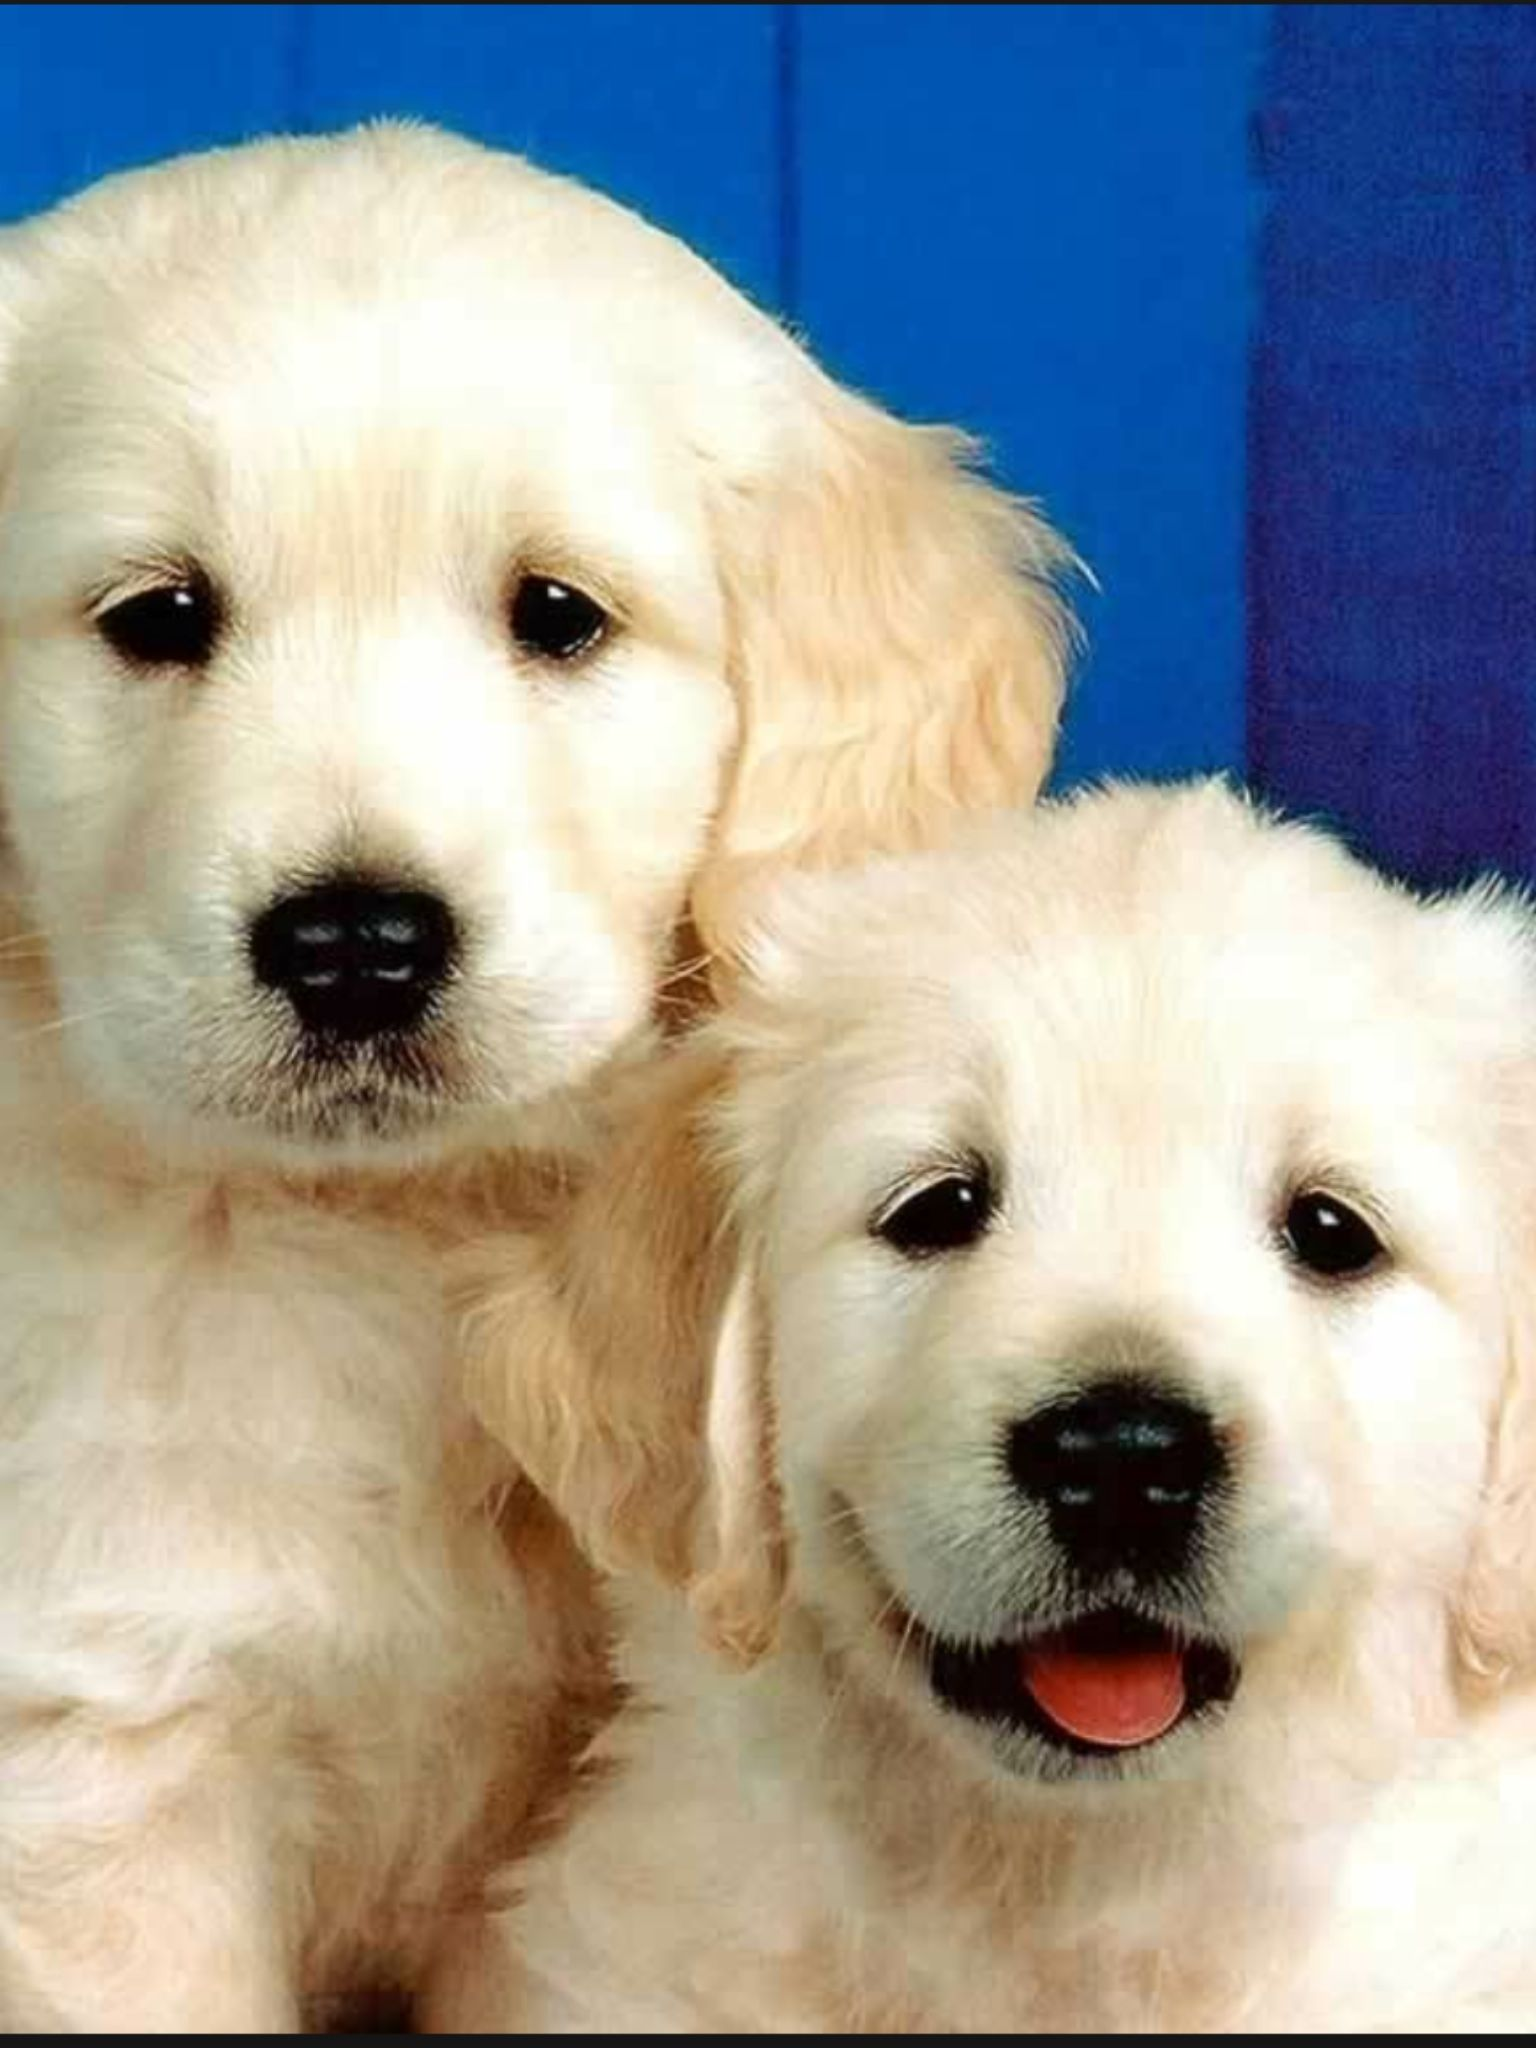 Cute Golden Retriever Puppies Cute Dog Wallpaper Cute Dogs Dogs